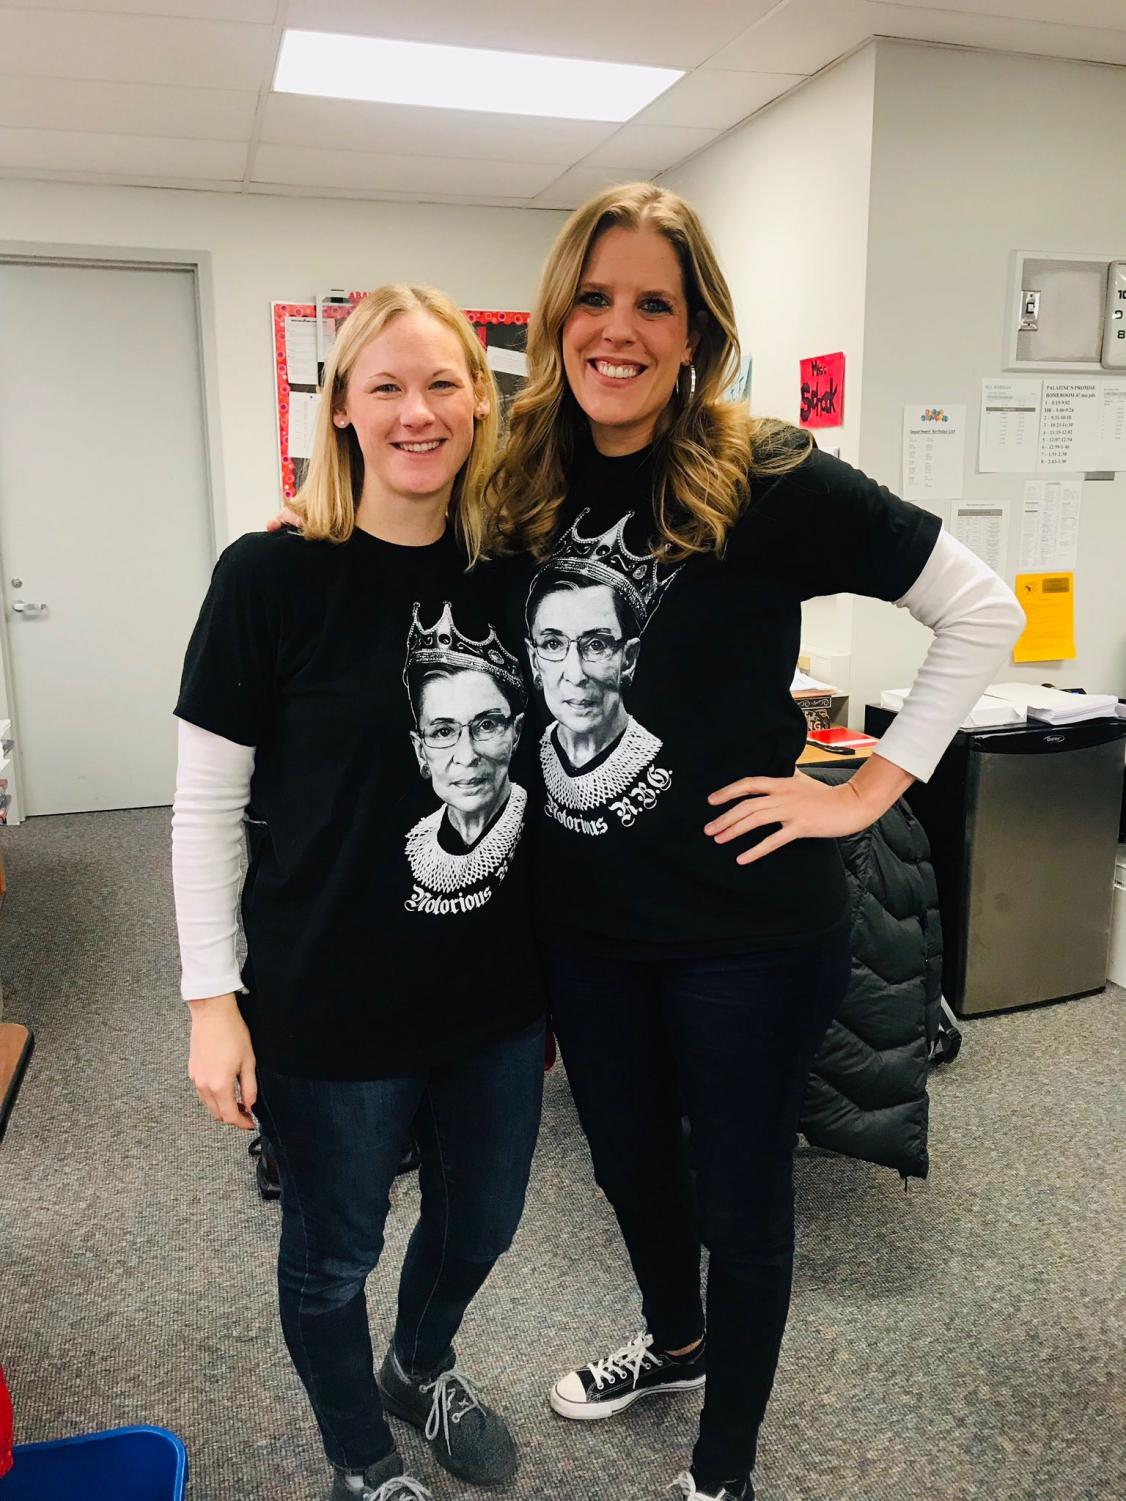 Leslie Schock and Emily Hamman are definitely Palatine's biggest RBG fans.